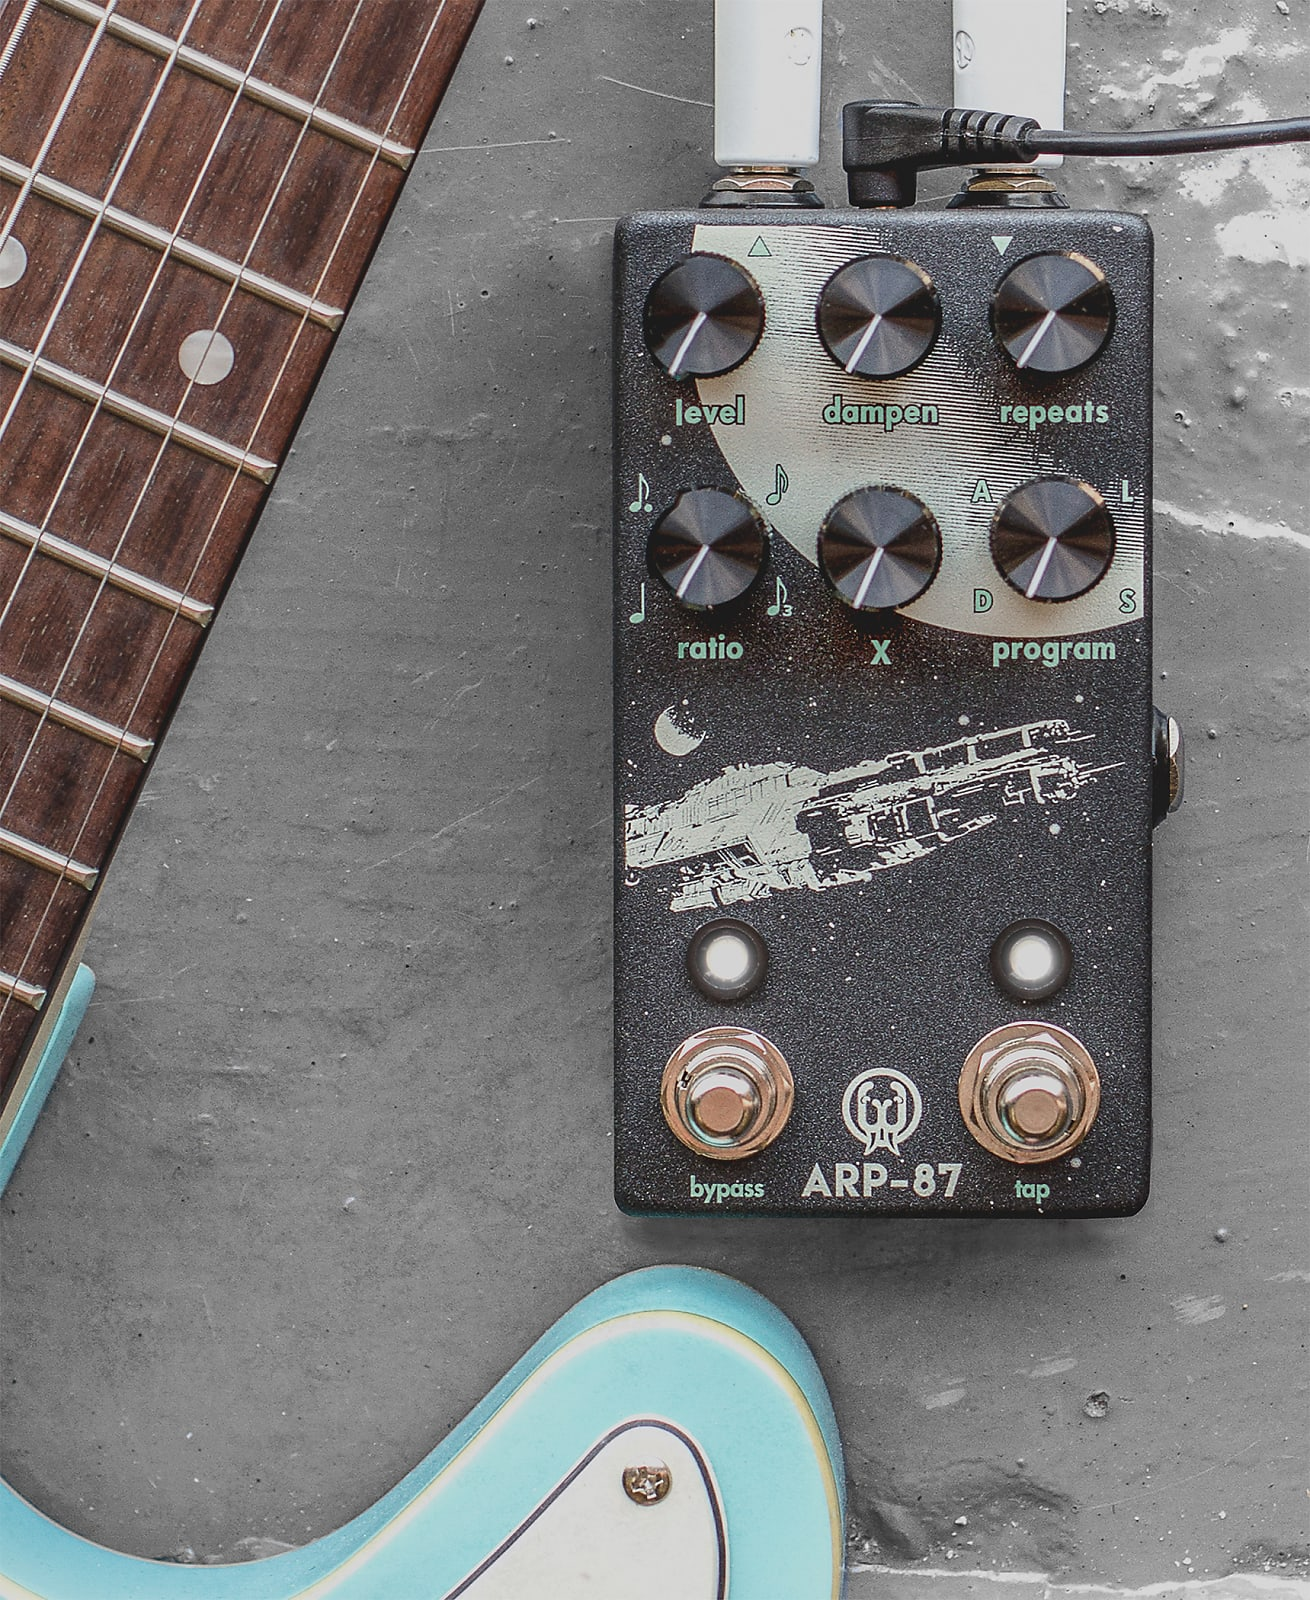 Walrus Audio ARP-87 Multi-Function Delay Effects Pedal